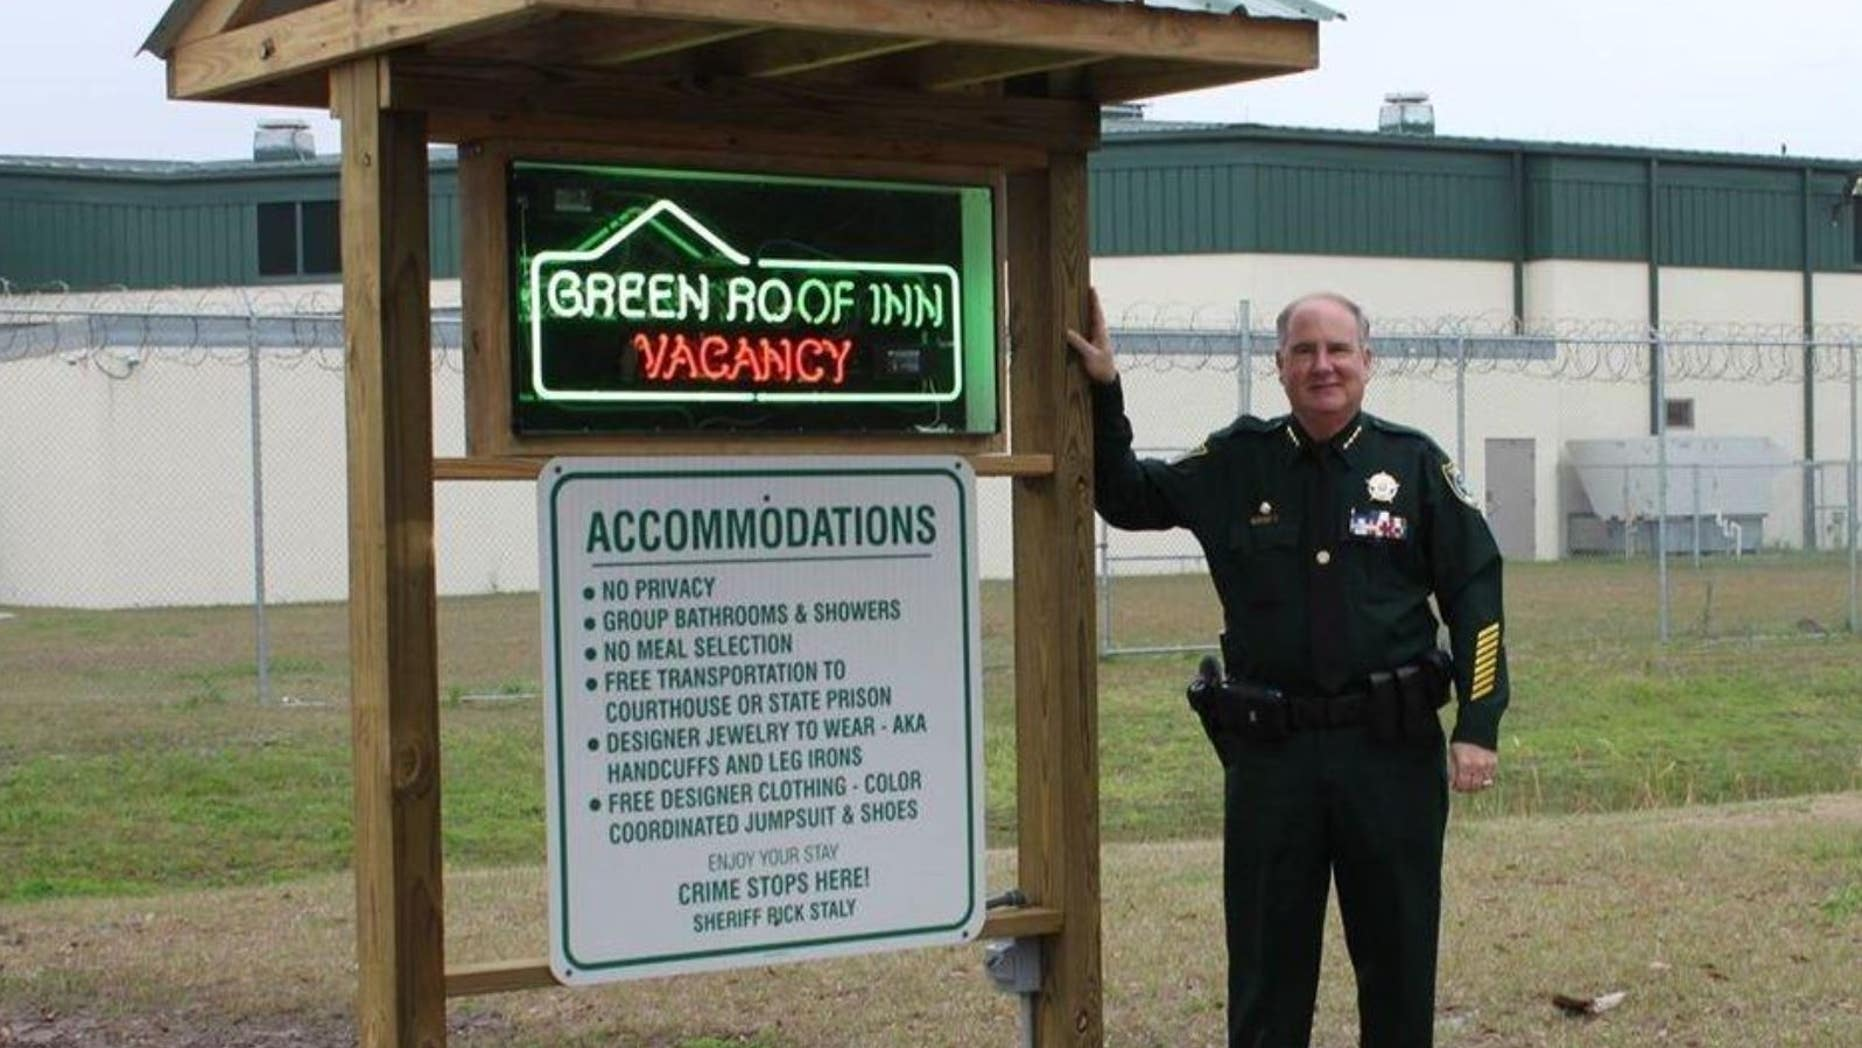 A county jail in Florida unveiled three new signs on Thursday.